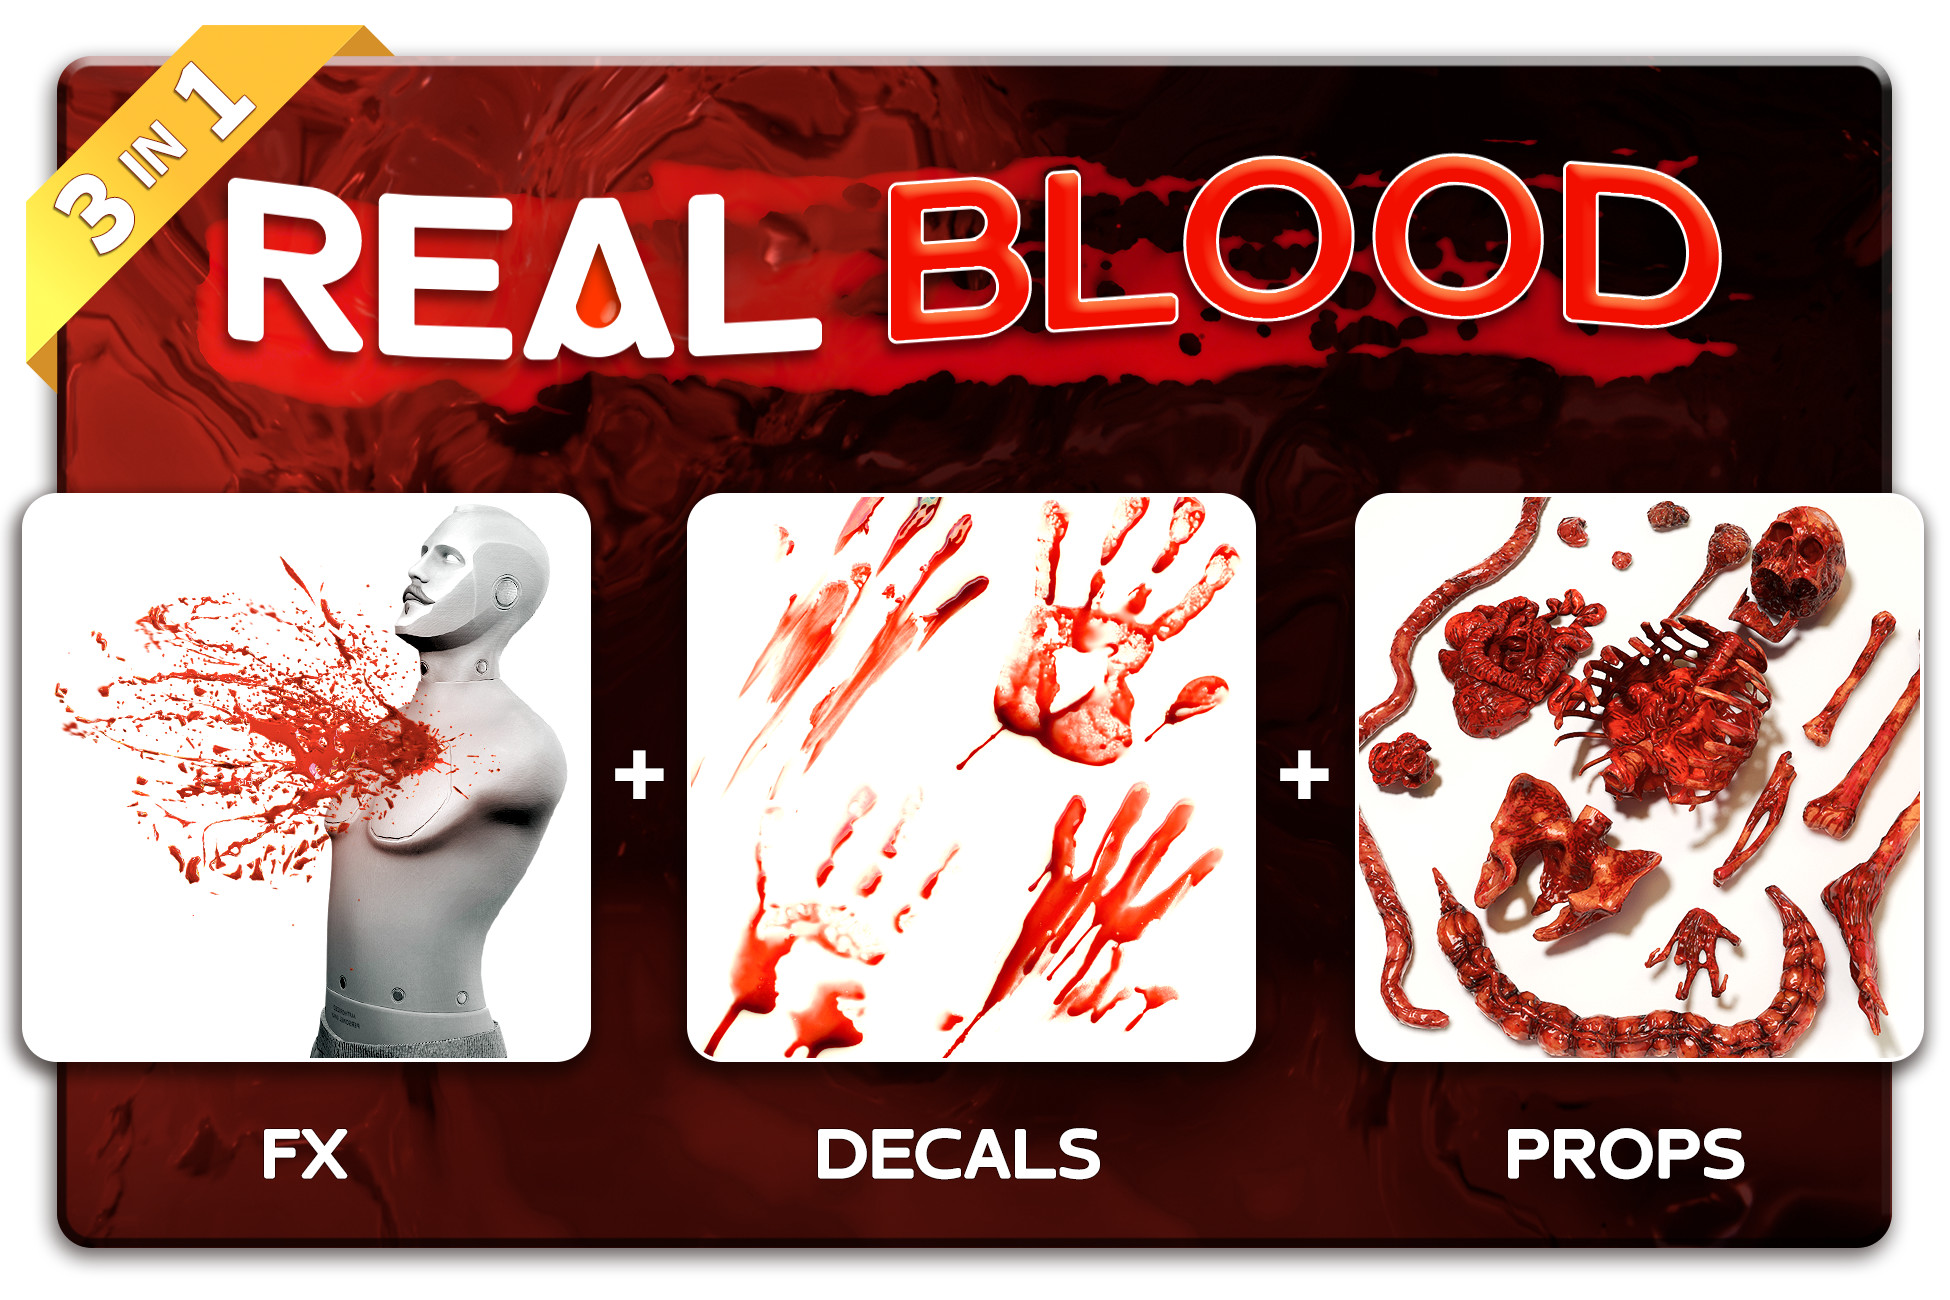 Real Blood